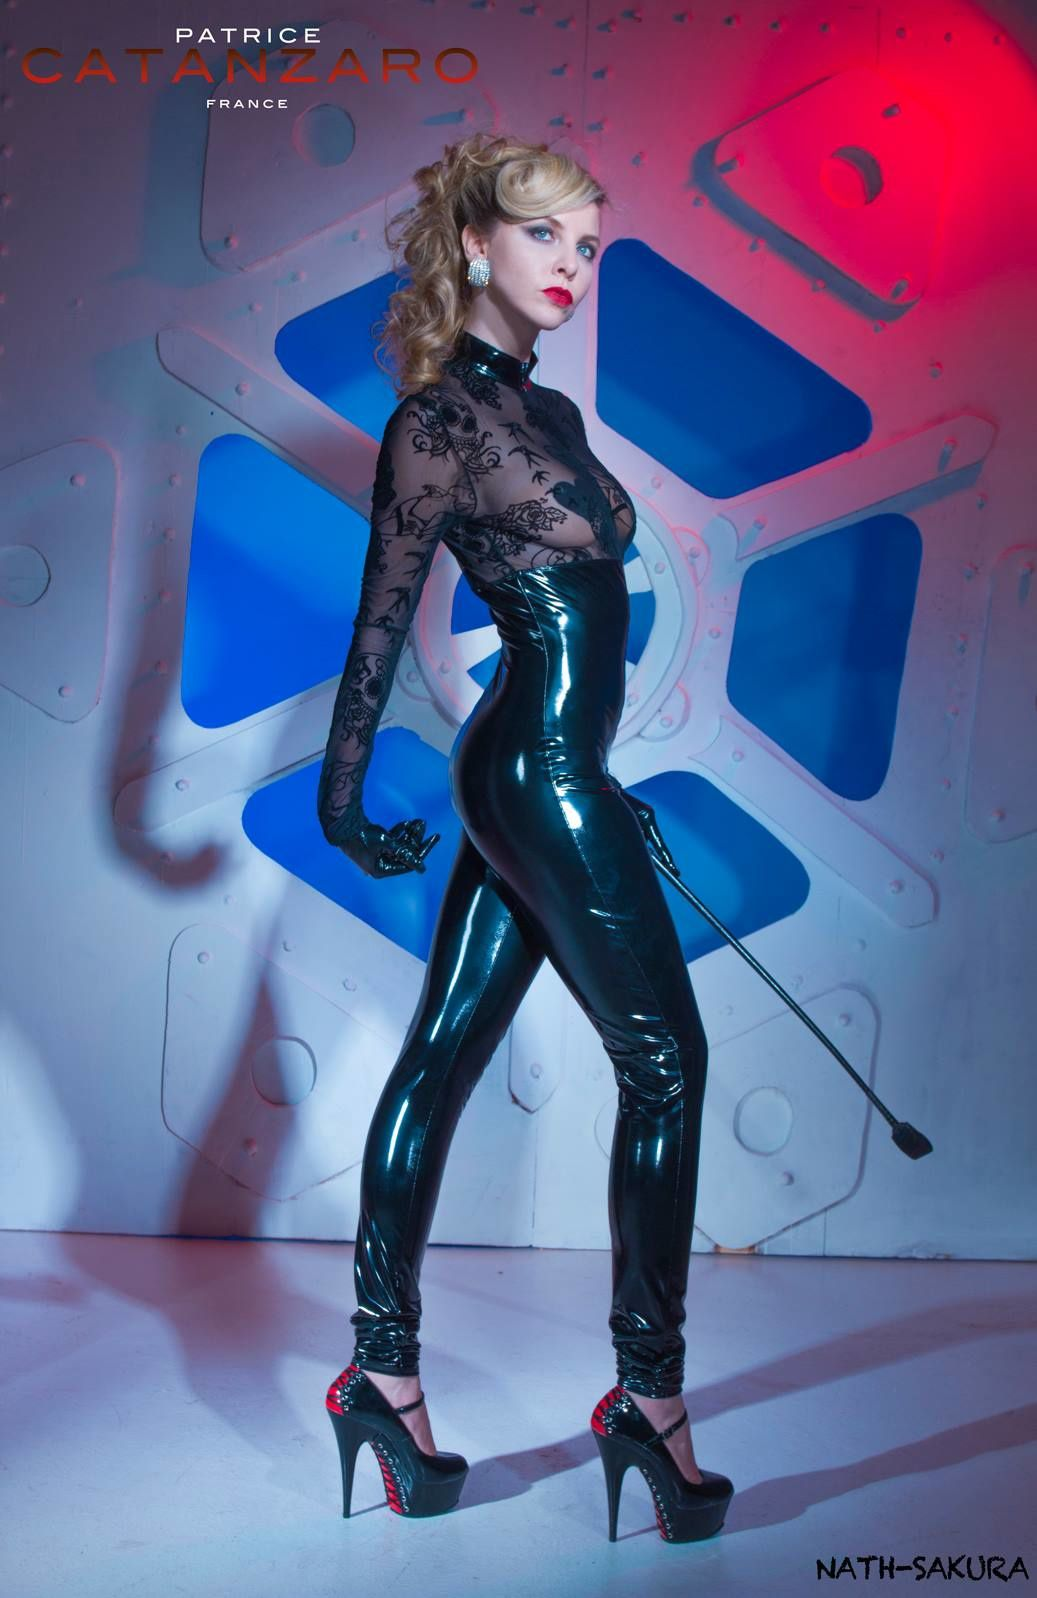 Pam Catsuit, new collection Tome 12 Patrice Catanzaro.